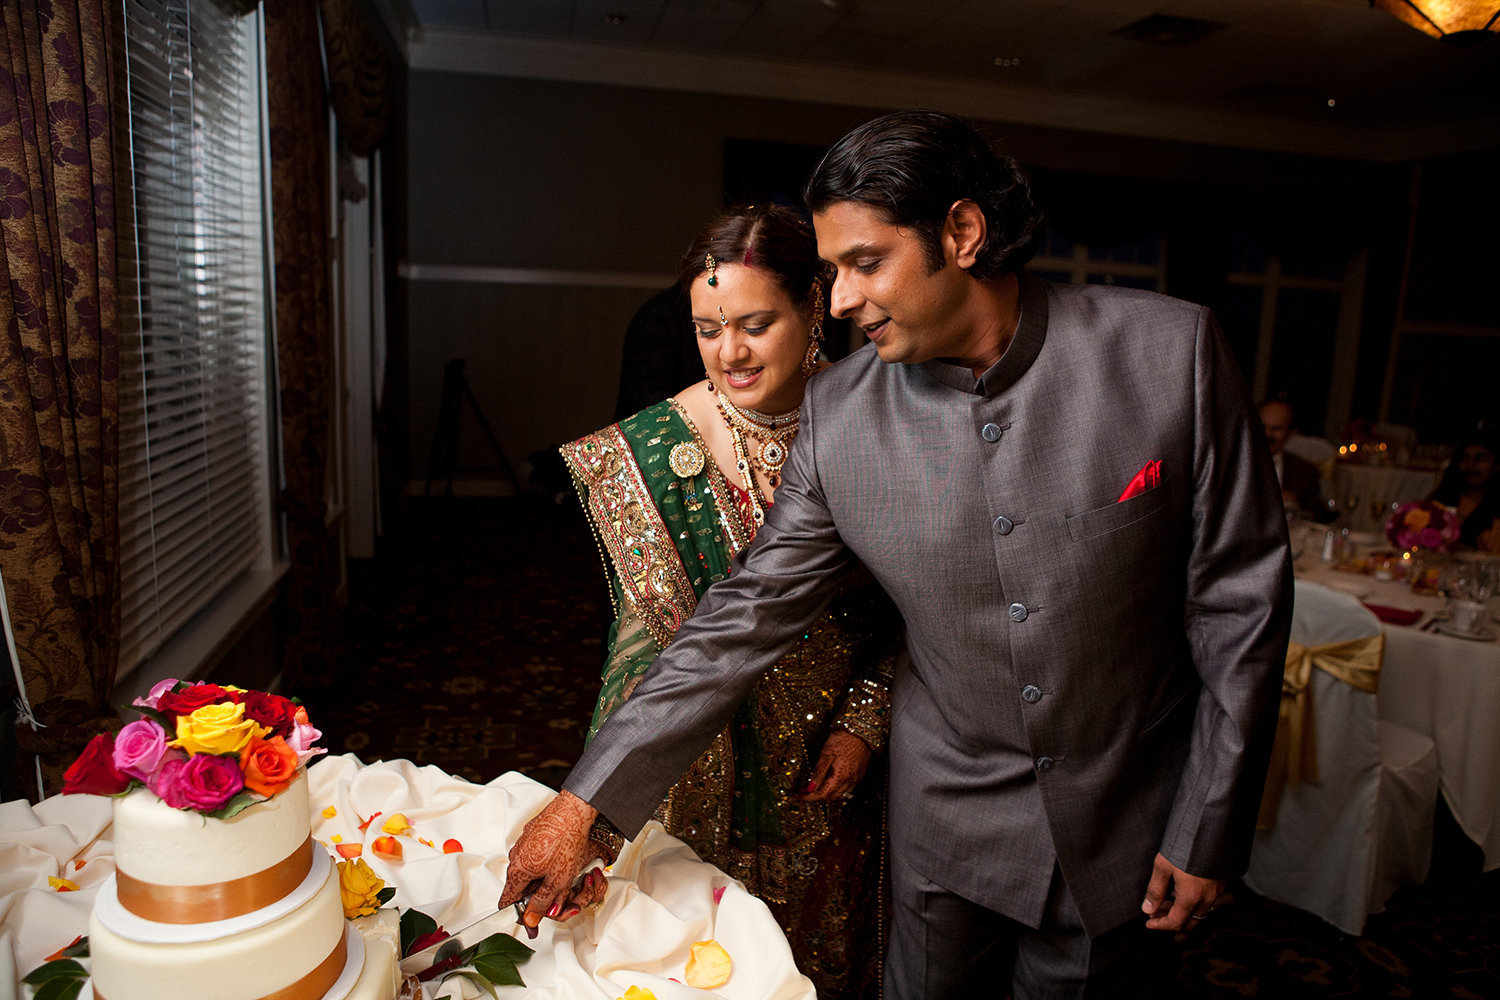 Indian bride and groom cut their cake